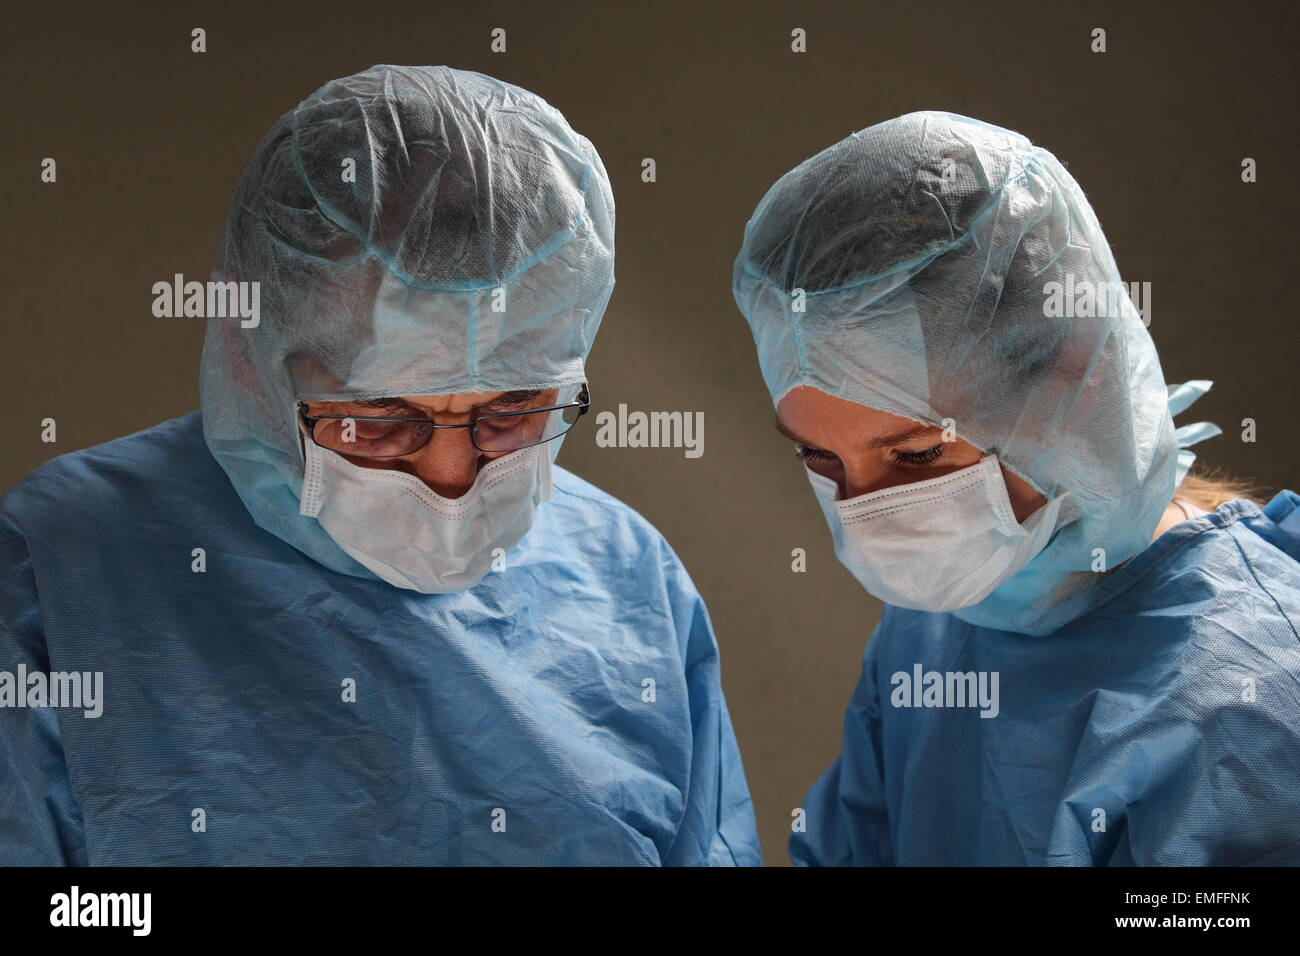 Two doctors working in a OP room - Stock Image